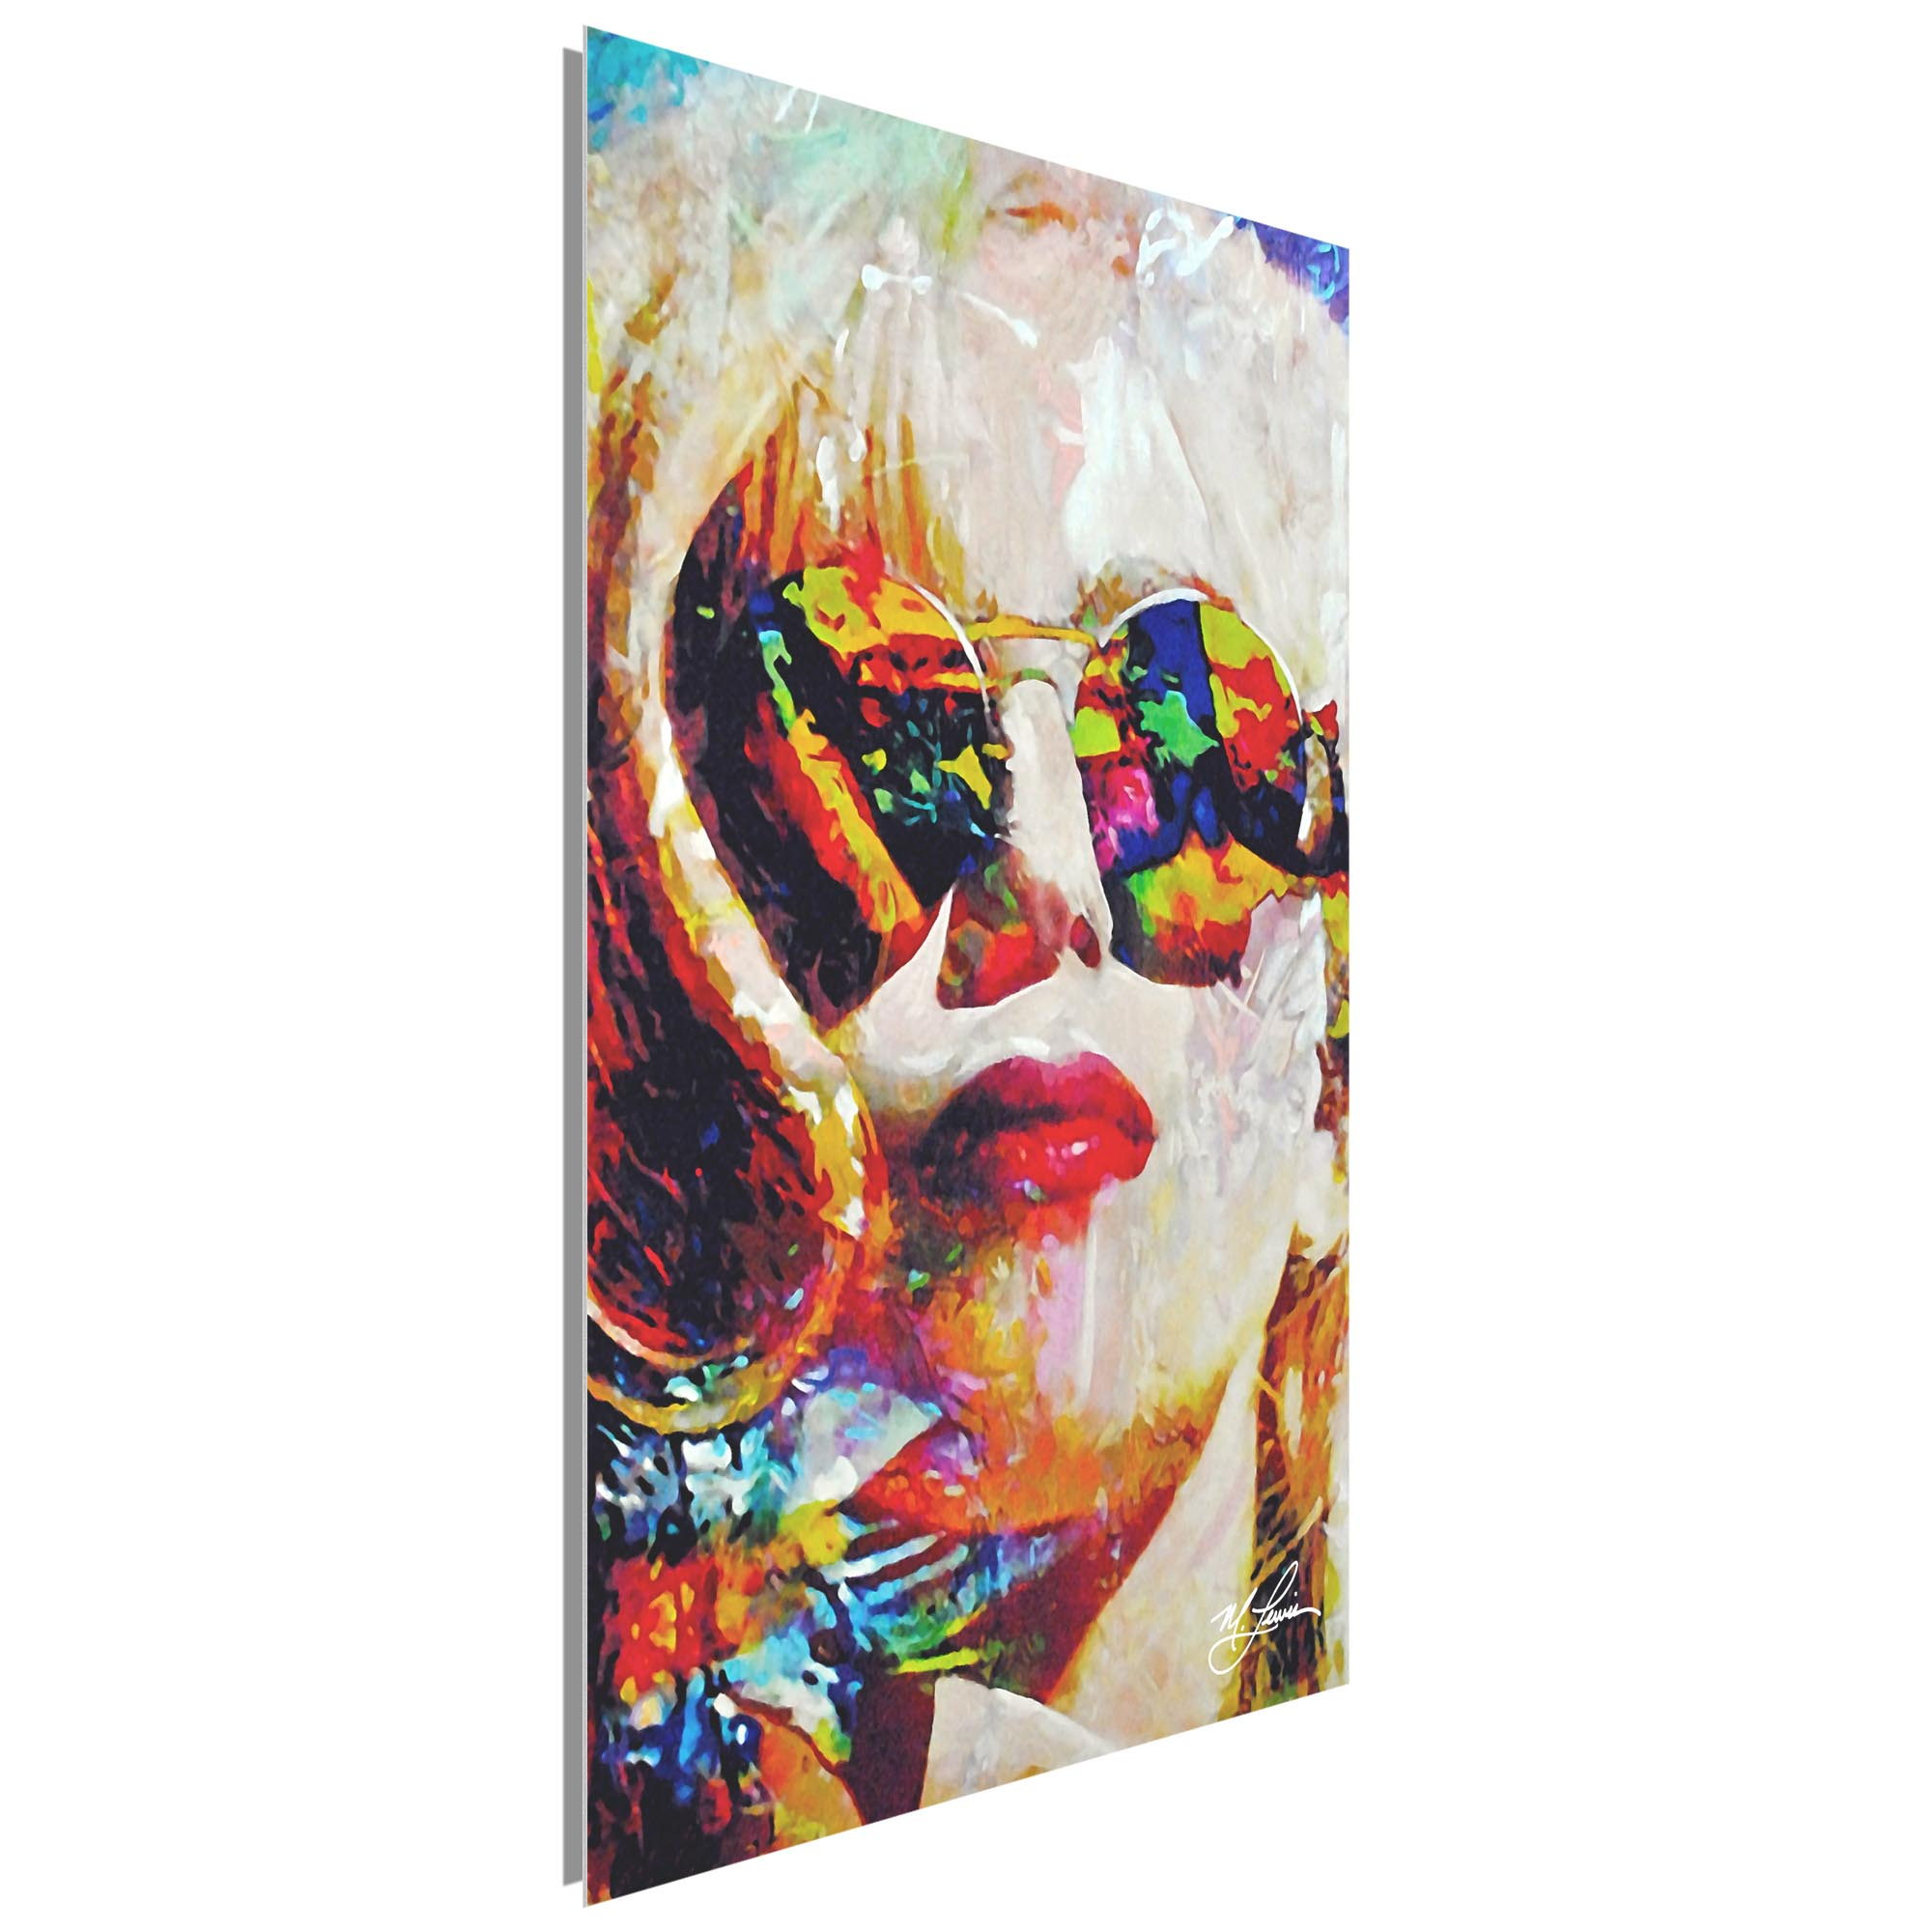 Lady Gaga Study 2 by Mark Lewis - Contemporary Pop Art on Metal or Plexiglass - Image 2